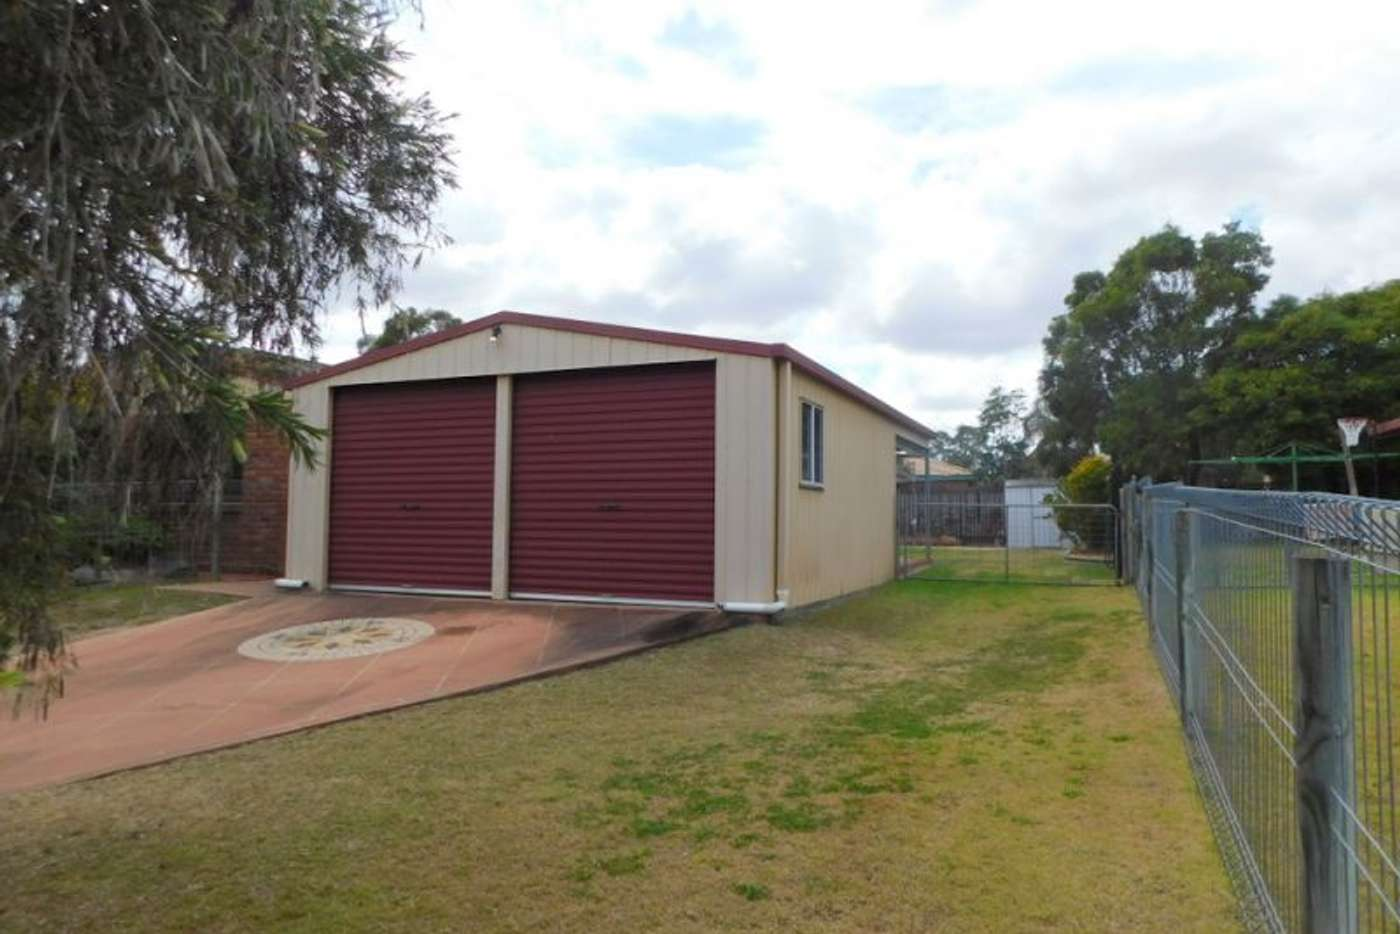 Seventh view of Homely house listing, 12 Fairway Drive, Nanango QLD 4615